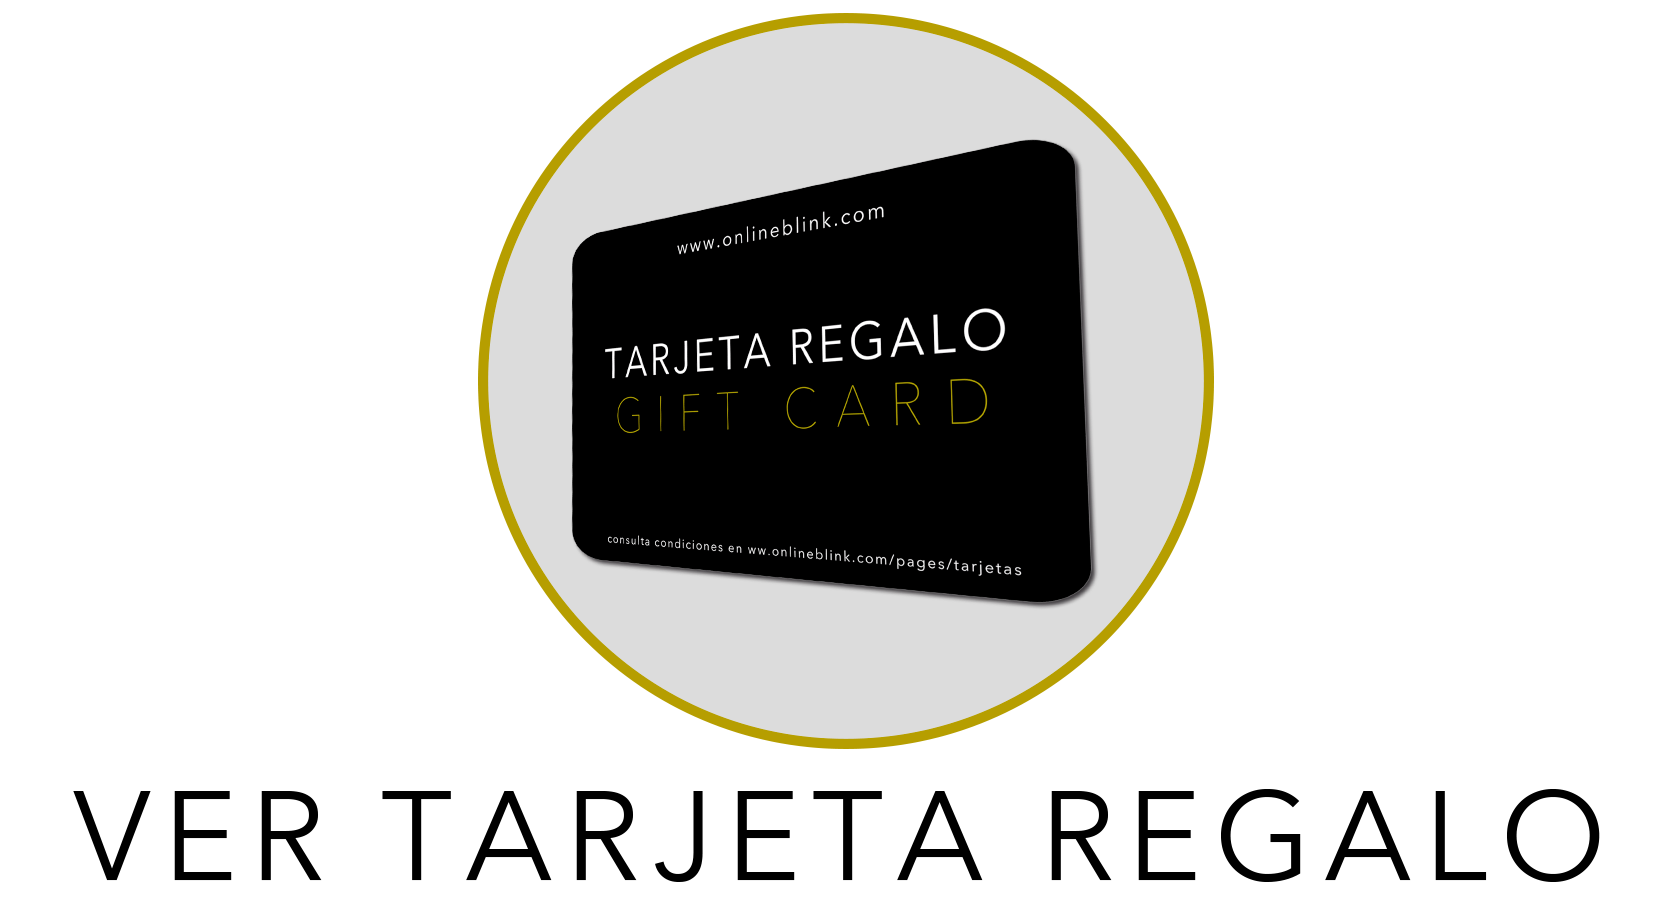 https://blinkprofessional.com/collections/tarjetas-regalo/products/micro-facial?variant=31446220963891